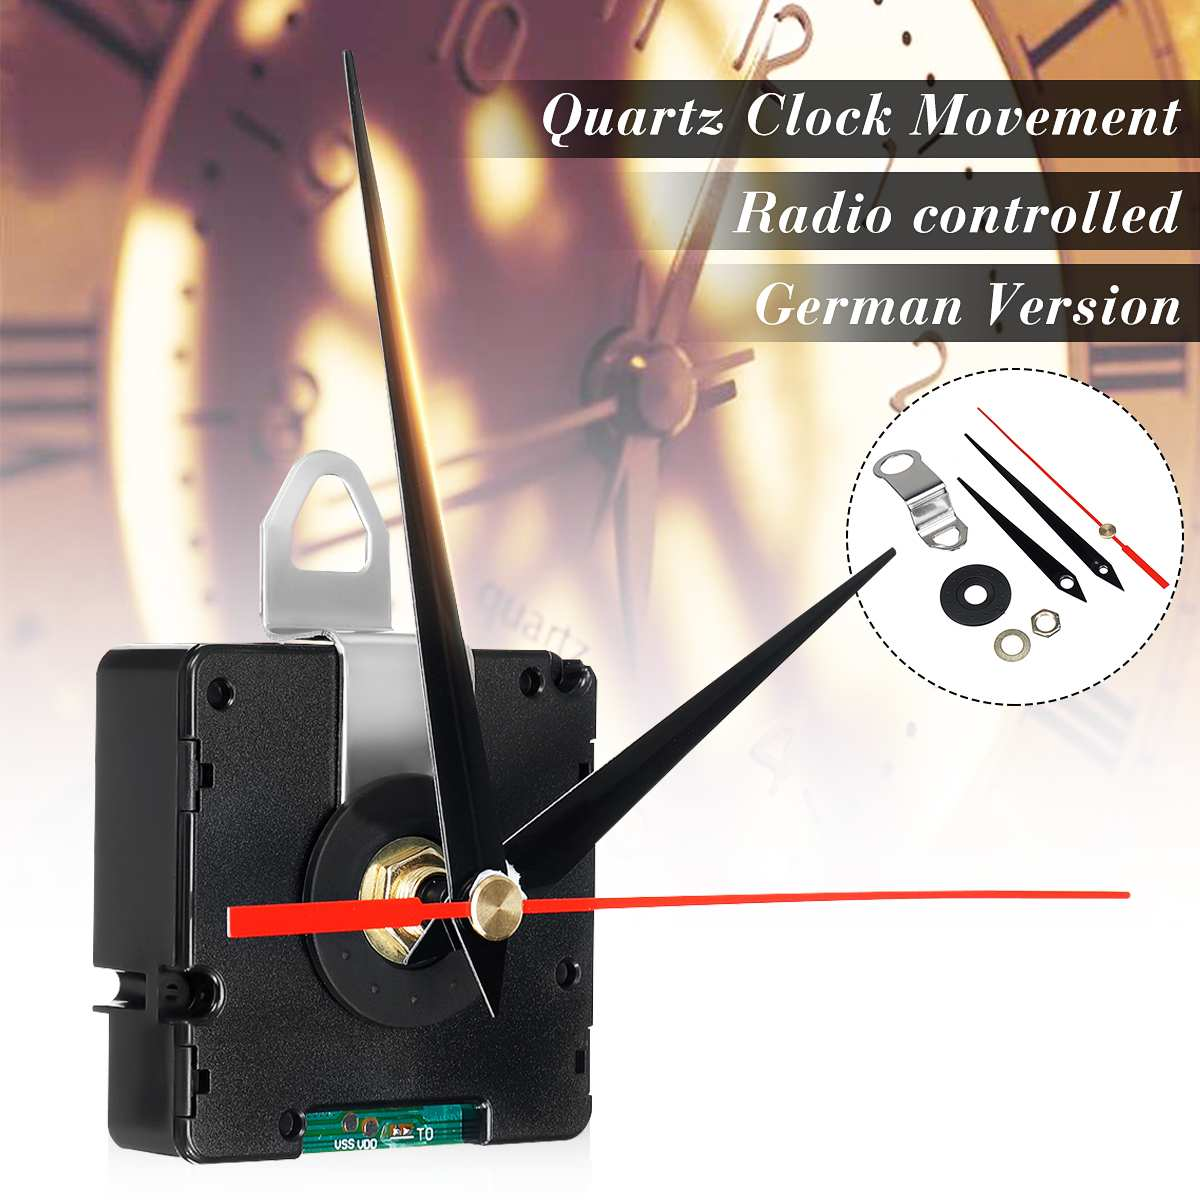 Diy Mode Atomic Radio Controlled Silent Clock Movement Diy Kit Germany Dcf Signal Hr9312 Mode